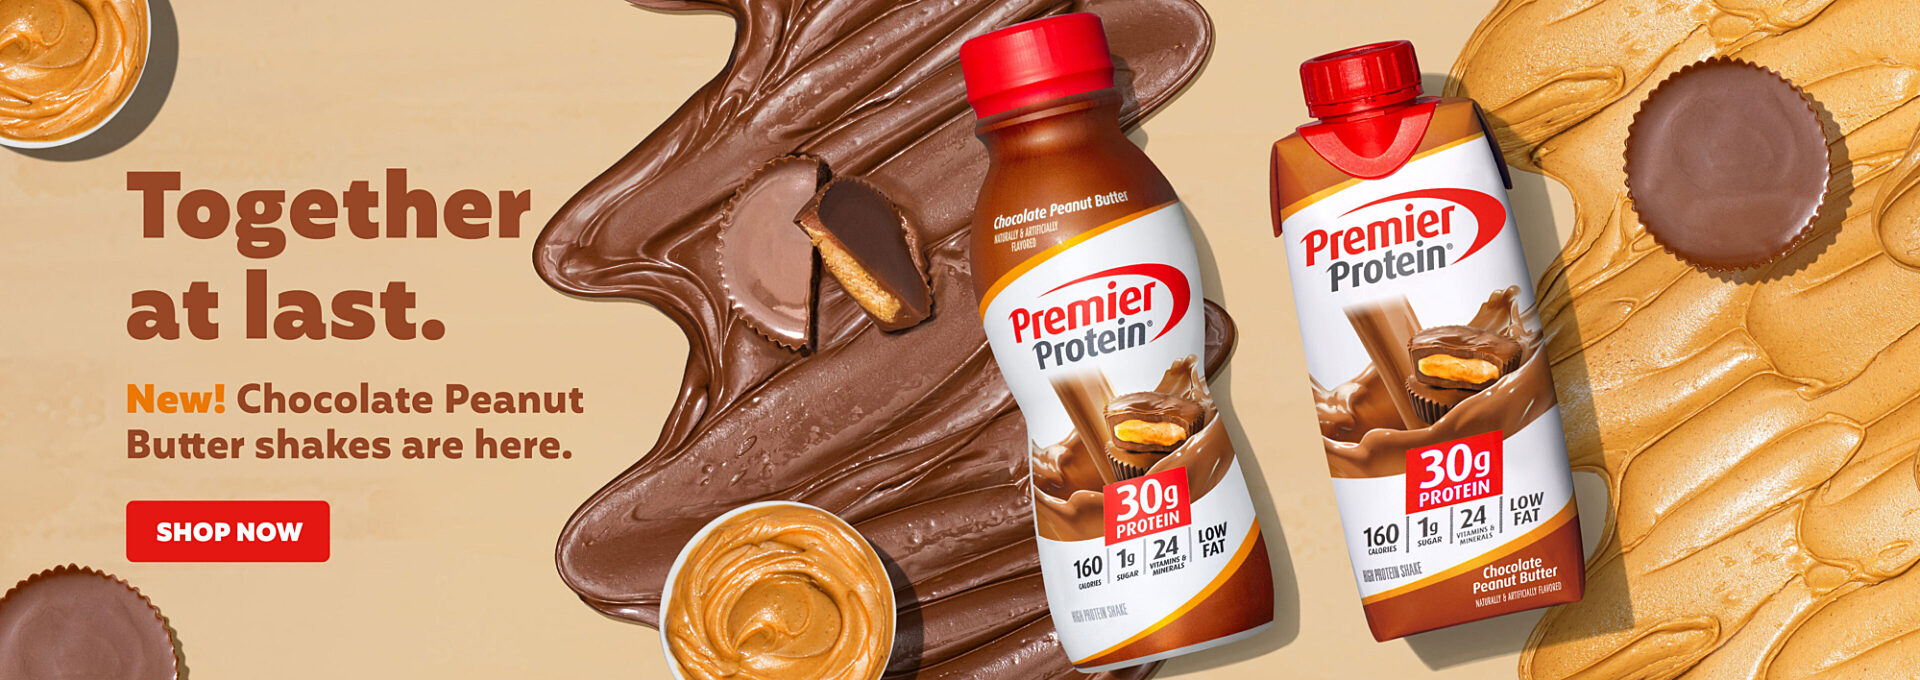 Together at Last.  New!  Chocolate Peanut Butter Shakes are here.  Shop Now!